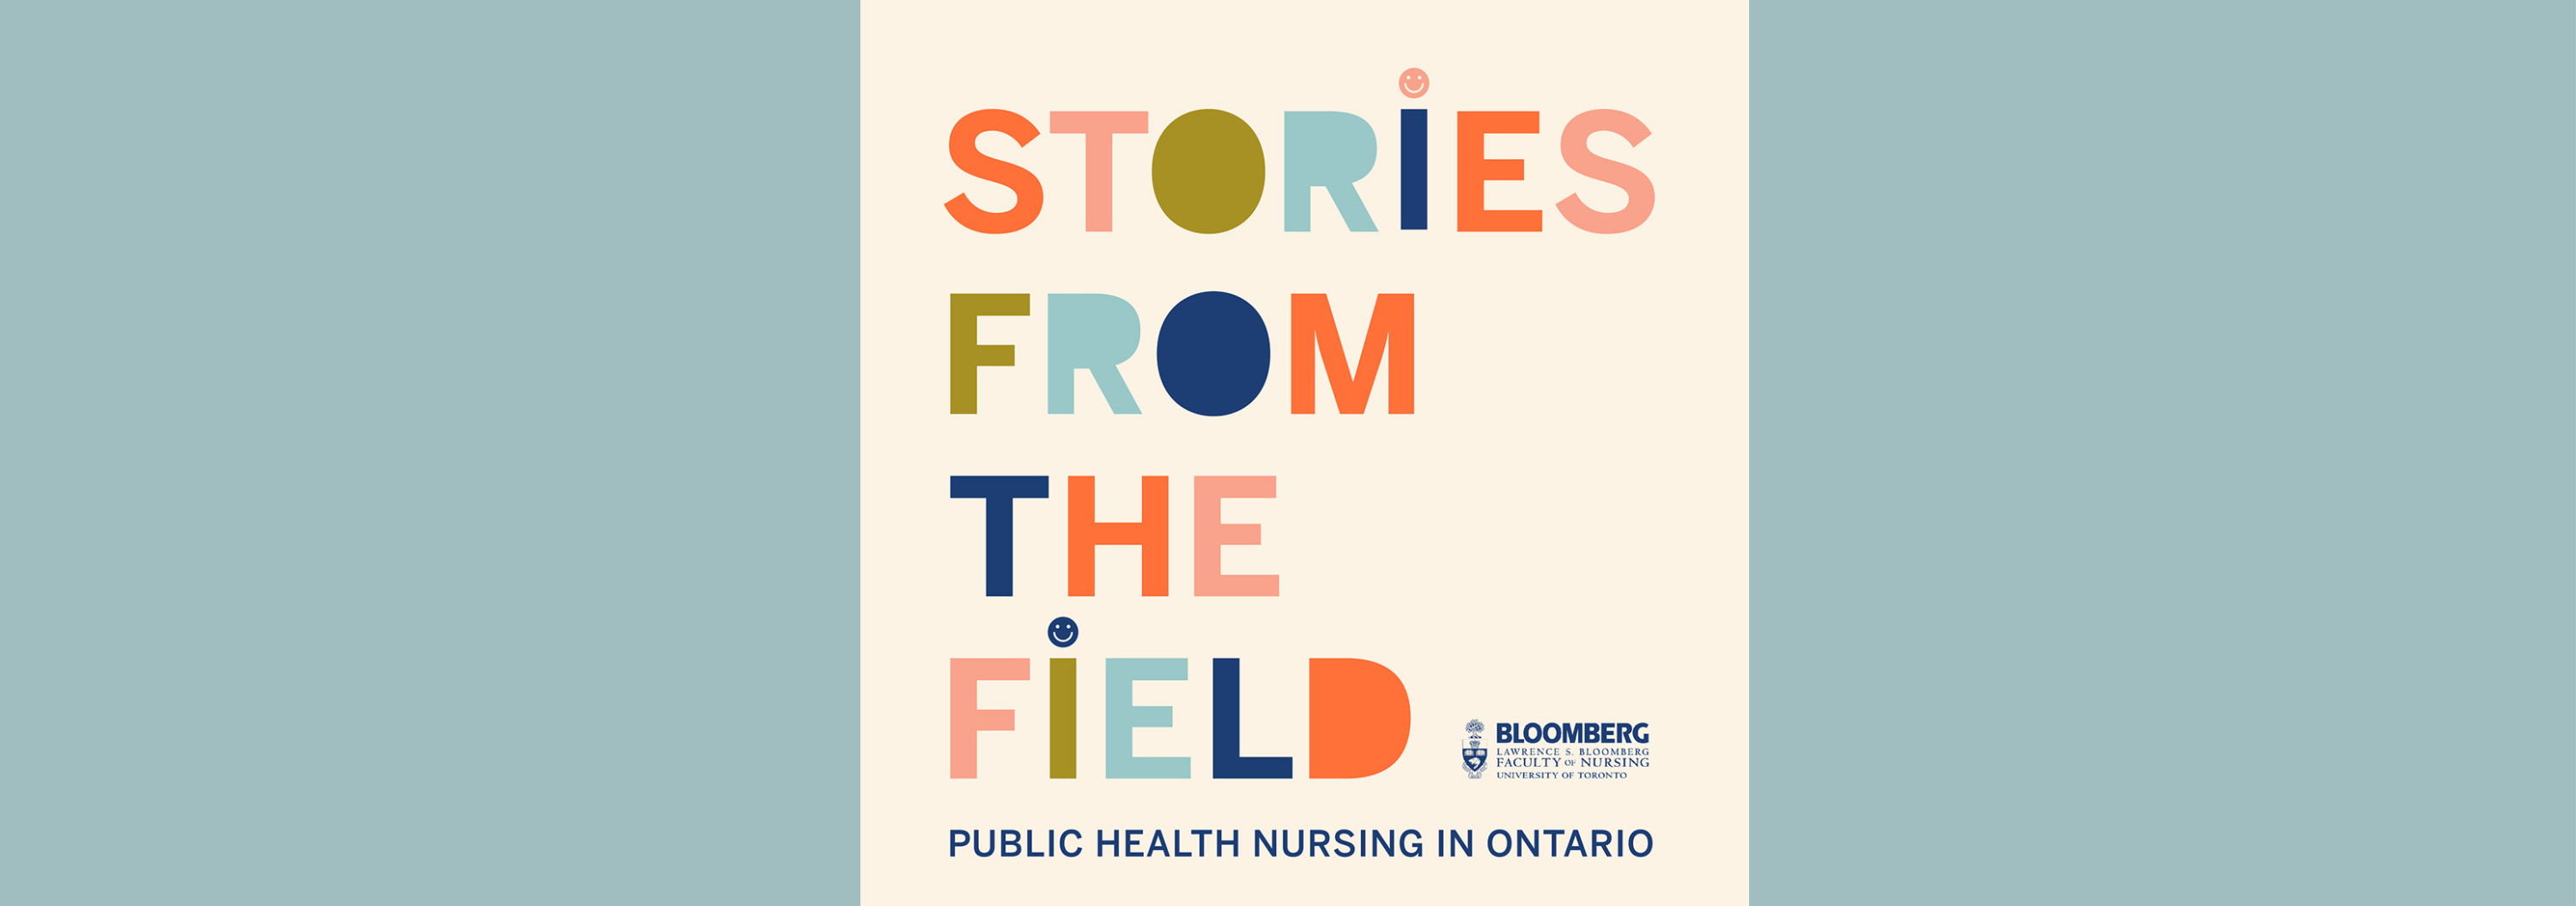 Podcast Series on Public Health Nursing: Stories from the Field